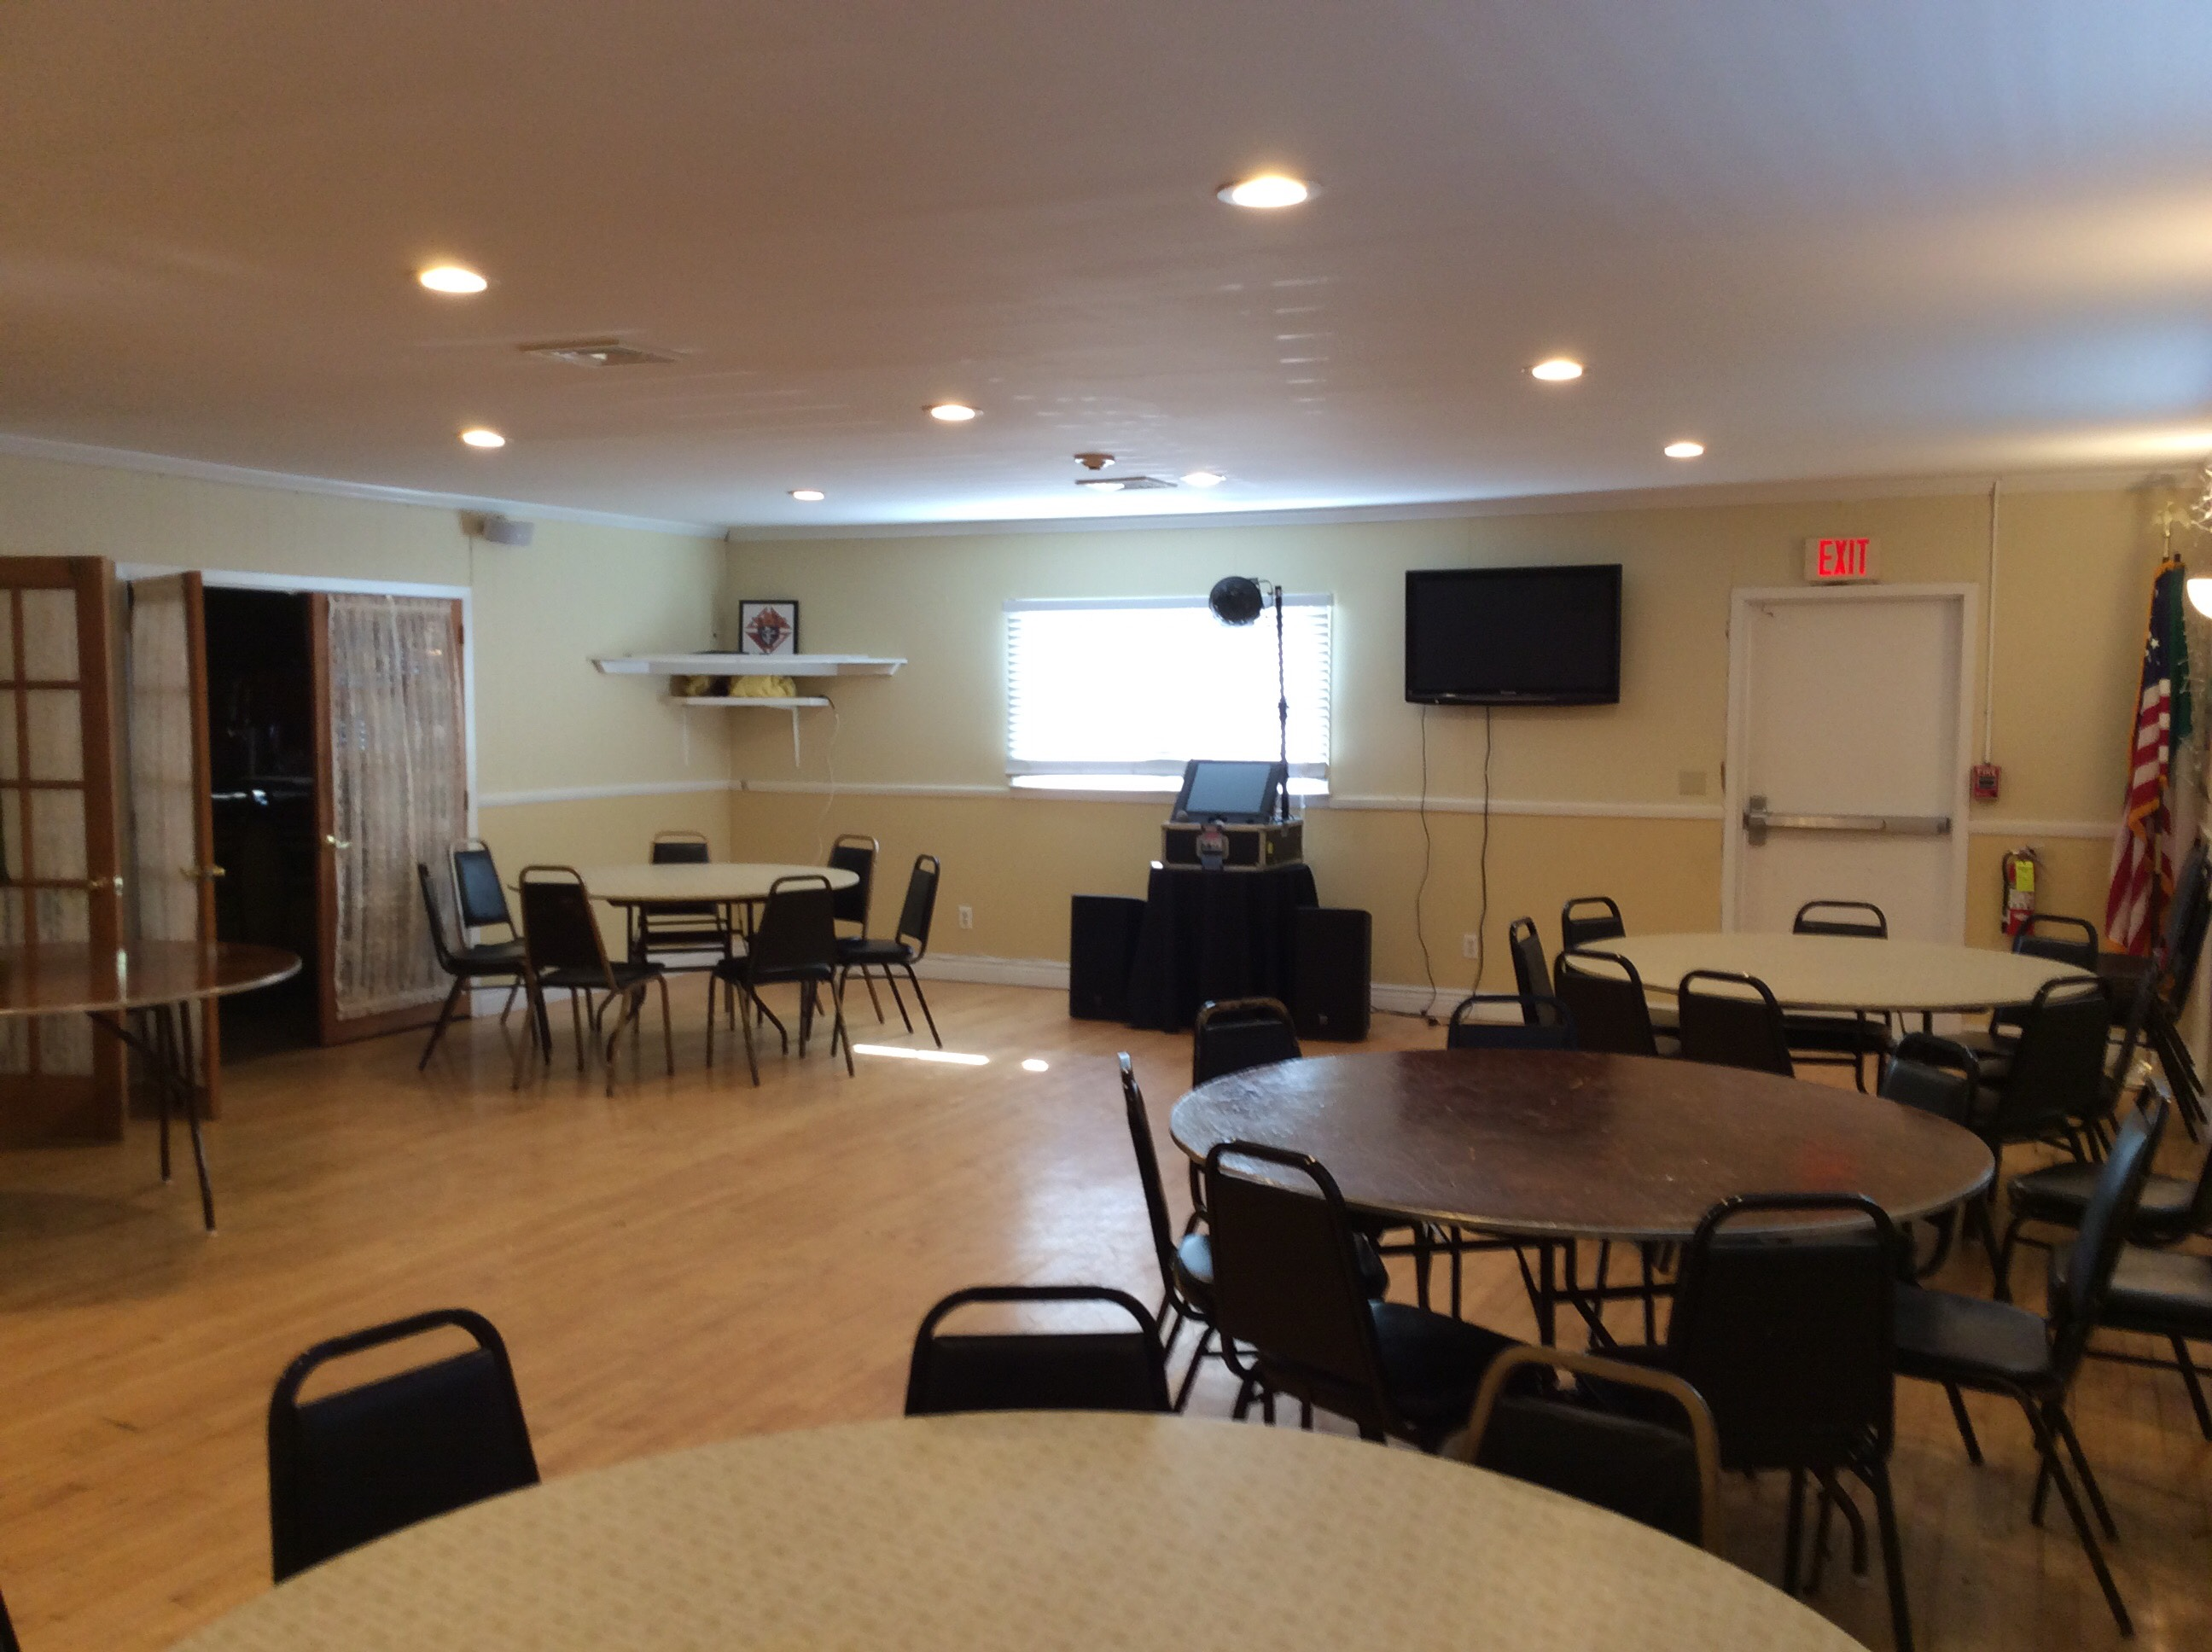 Air Conditioner Rental >> Bayshore Columbia Club Hall Rentals in Middletown, NJ